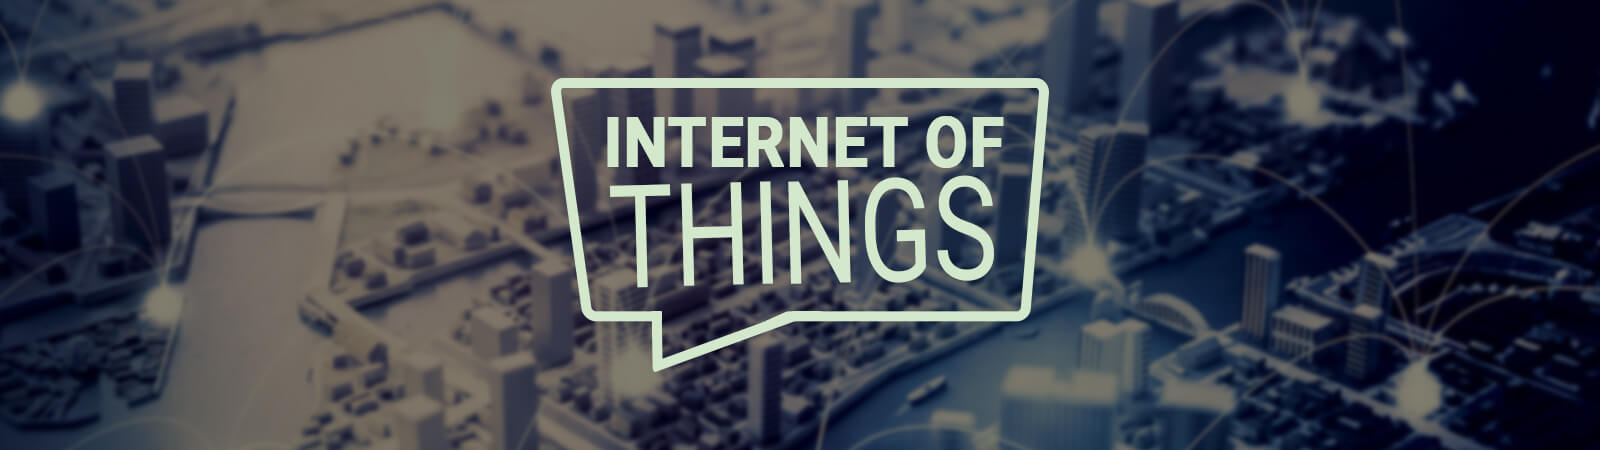 internet-of-things-solutions